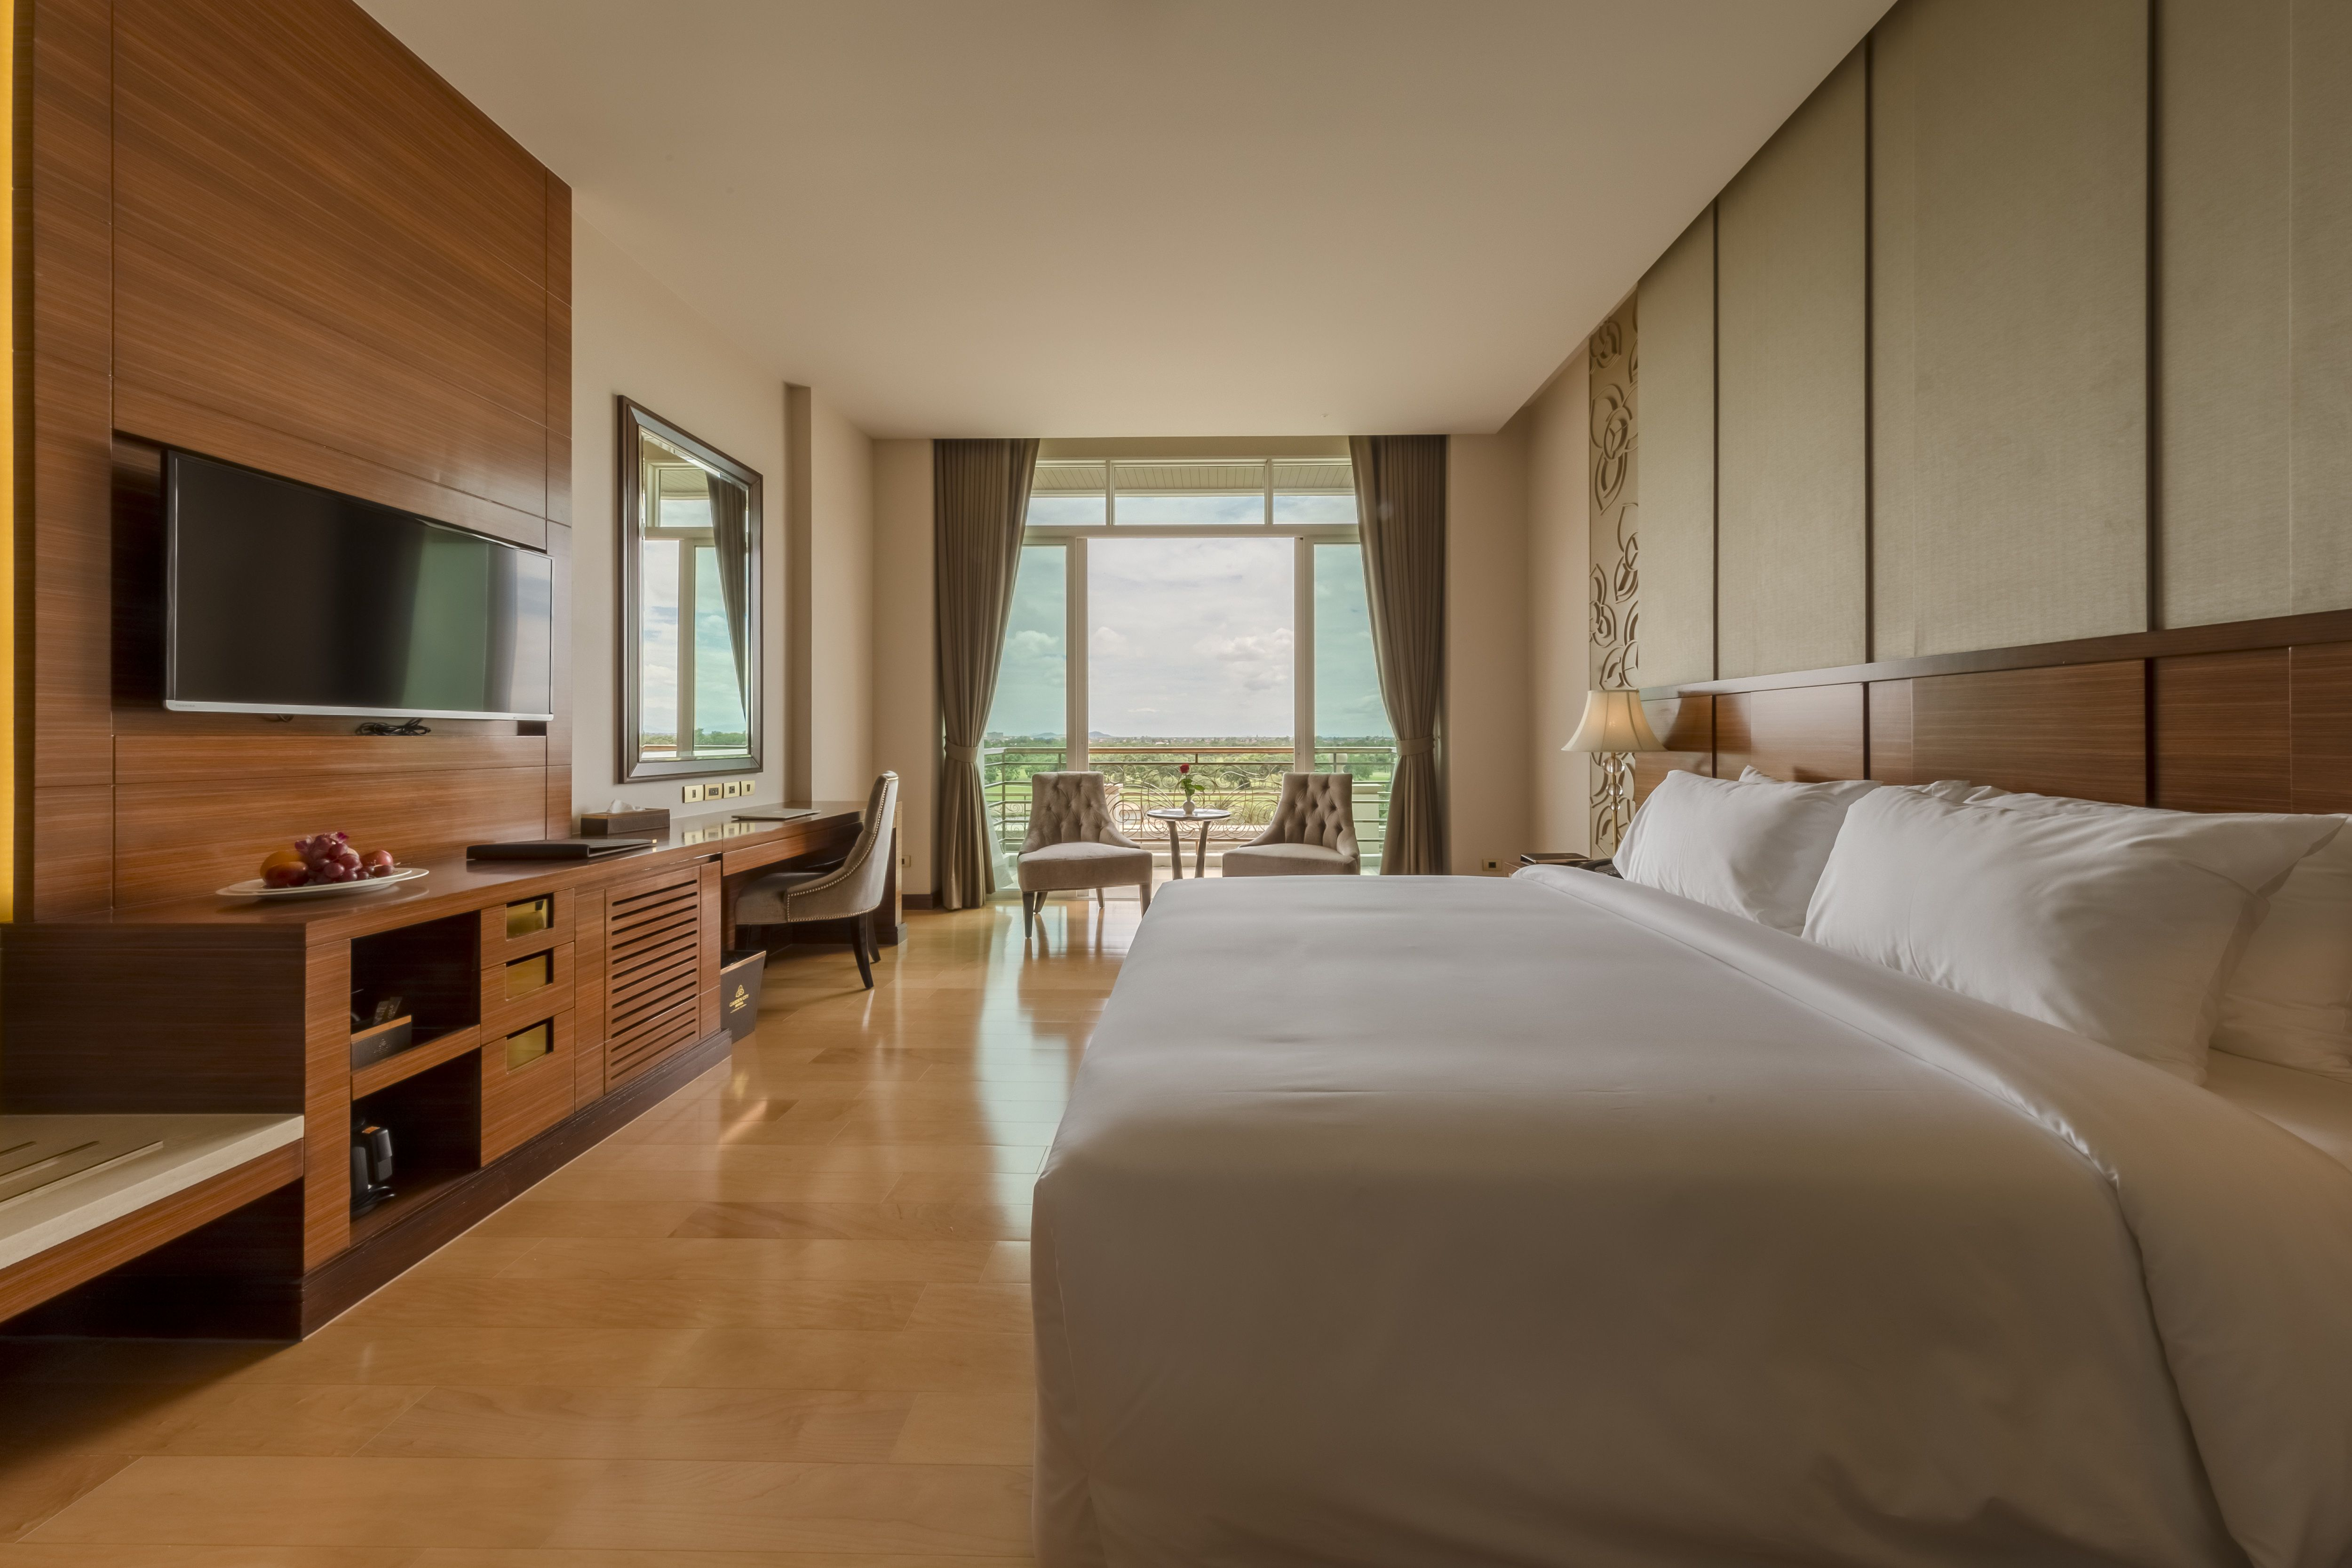 45 Square Meters Deluxe Room Strokes In A Modern Style Of Wood Marble And A Glass Window With A See Through Bath Room From Garden City Garden City Hotel Hotel